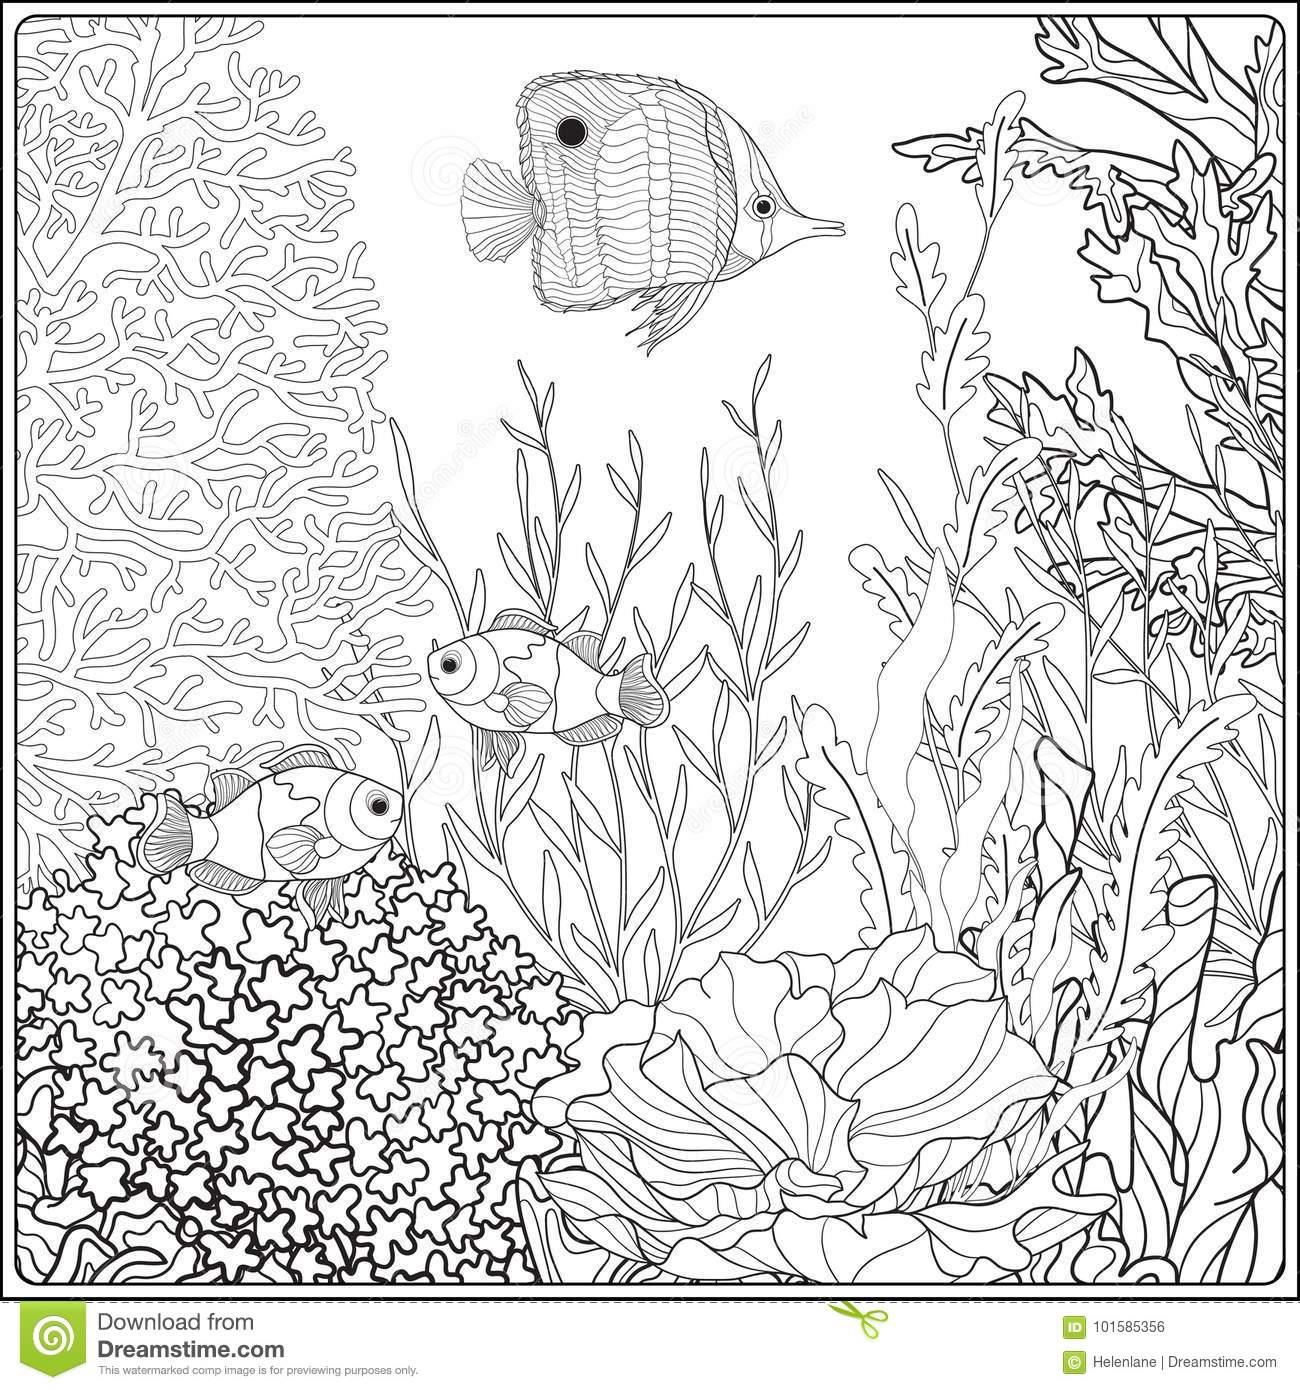 Adult Coloring Book. Coloring Page With Underwater World Coral ... | 1390x1300